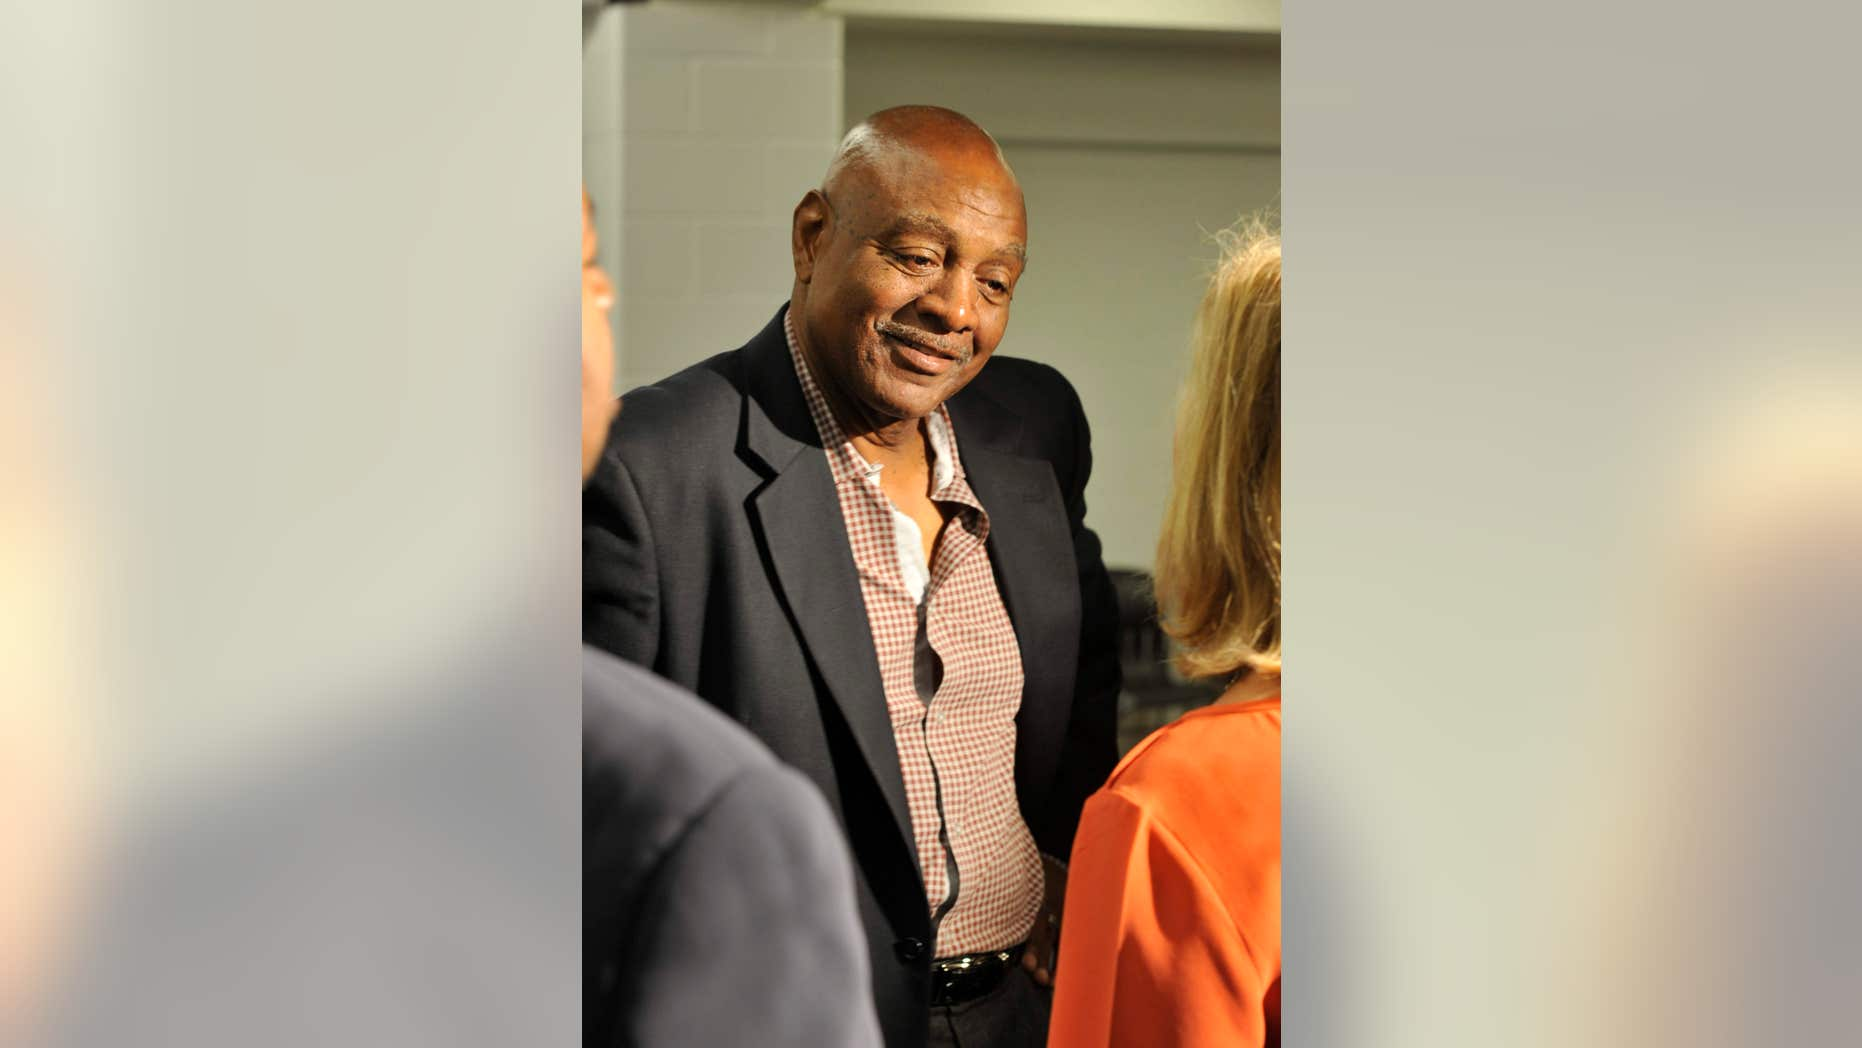 FILE_This Wednesday, May 29, 2013, file photo shows former NFL player Reggie Rucker after a news conference for Hall of Fame running back Jim Brown, in Cleveland.